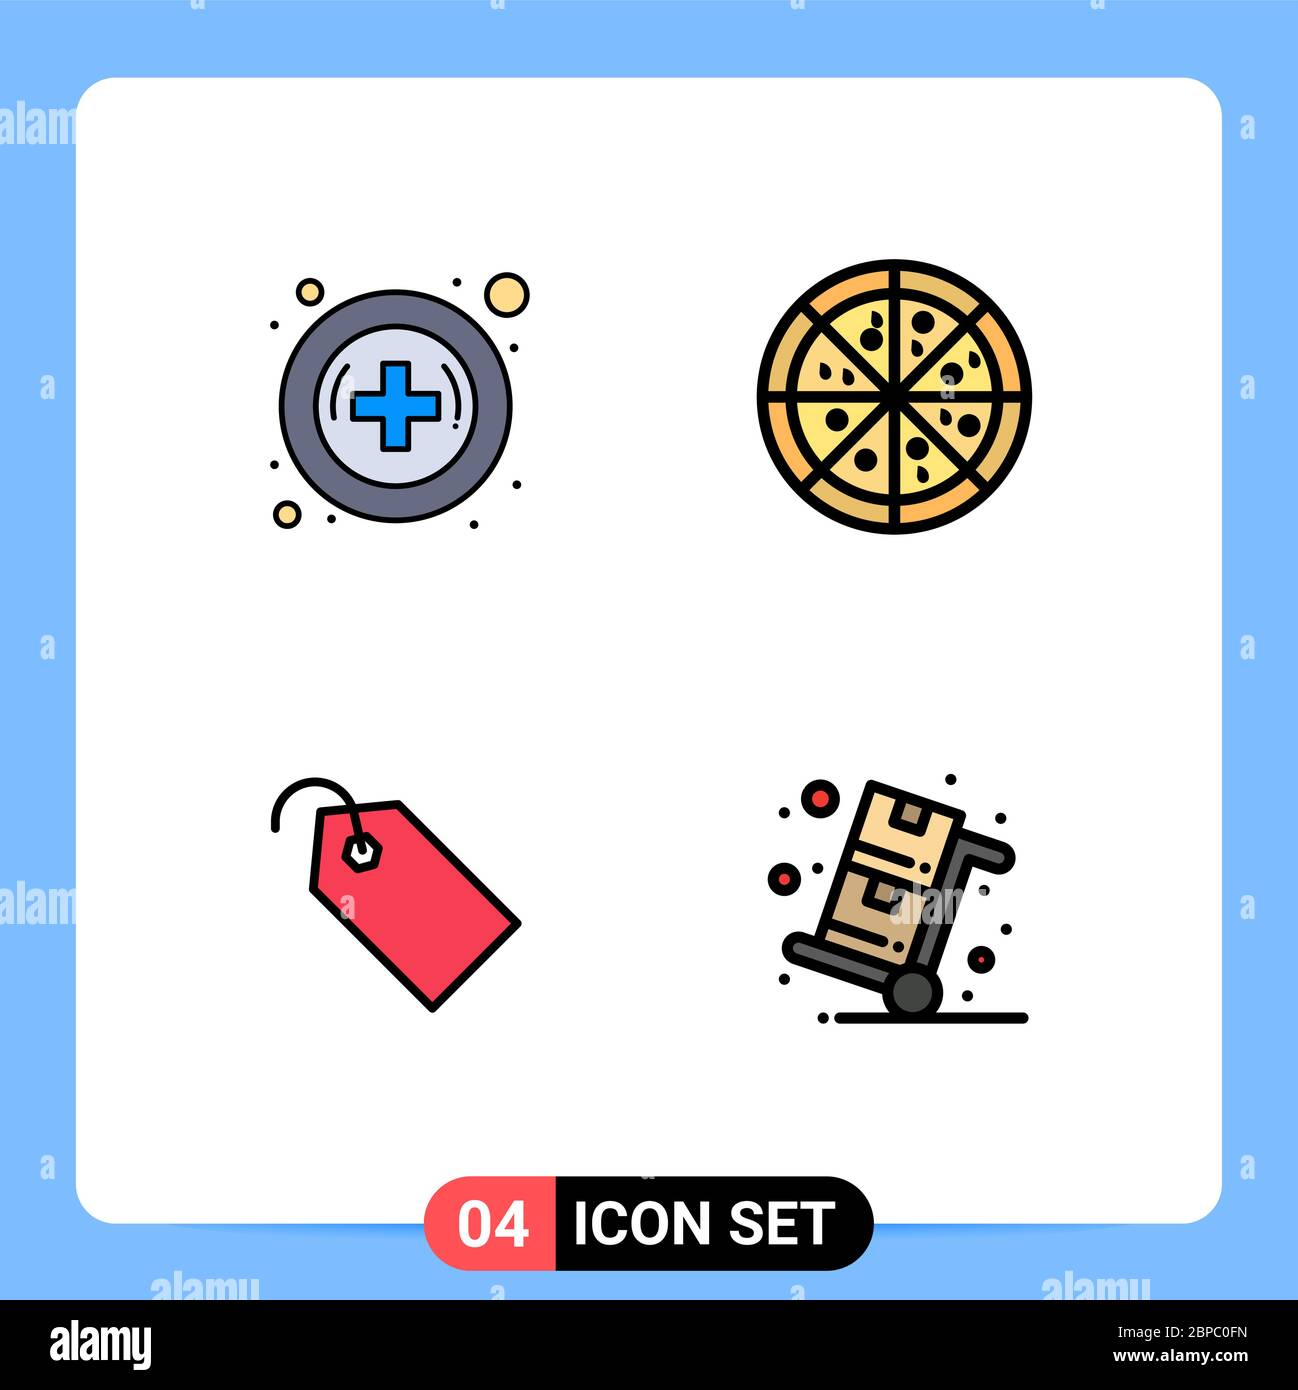 modern set of 4 filledline flat colors pictograph of hospital cyber monday fast food tag sales editable vector design elements stock vector image art alamy alamy